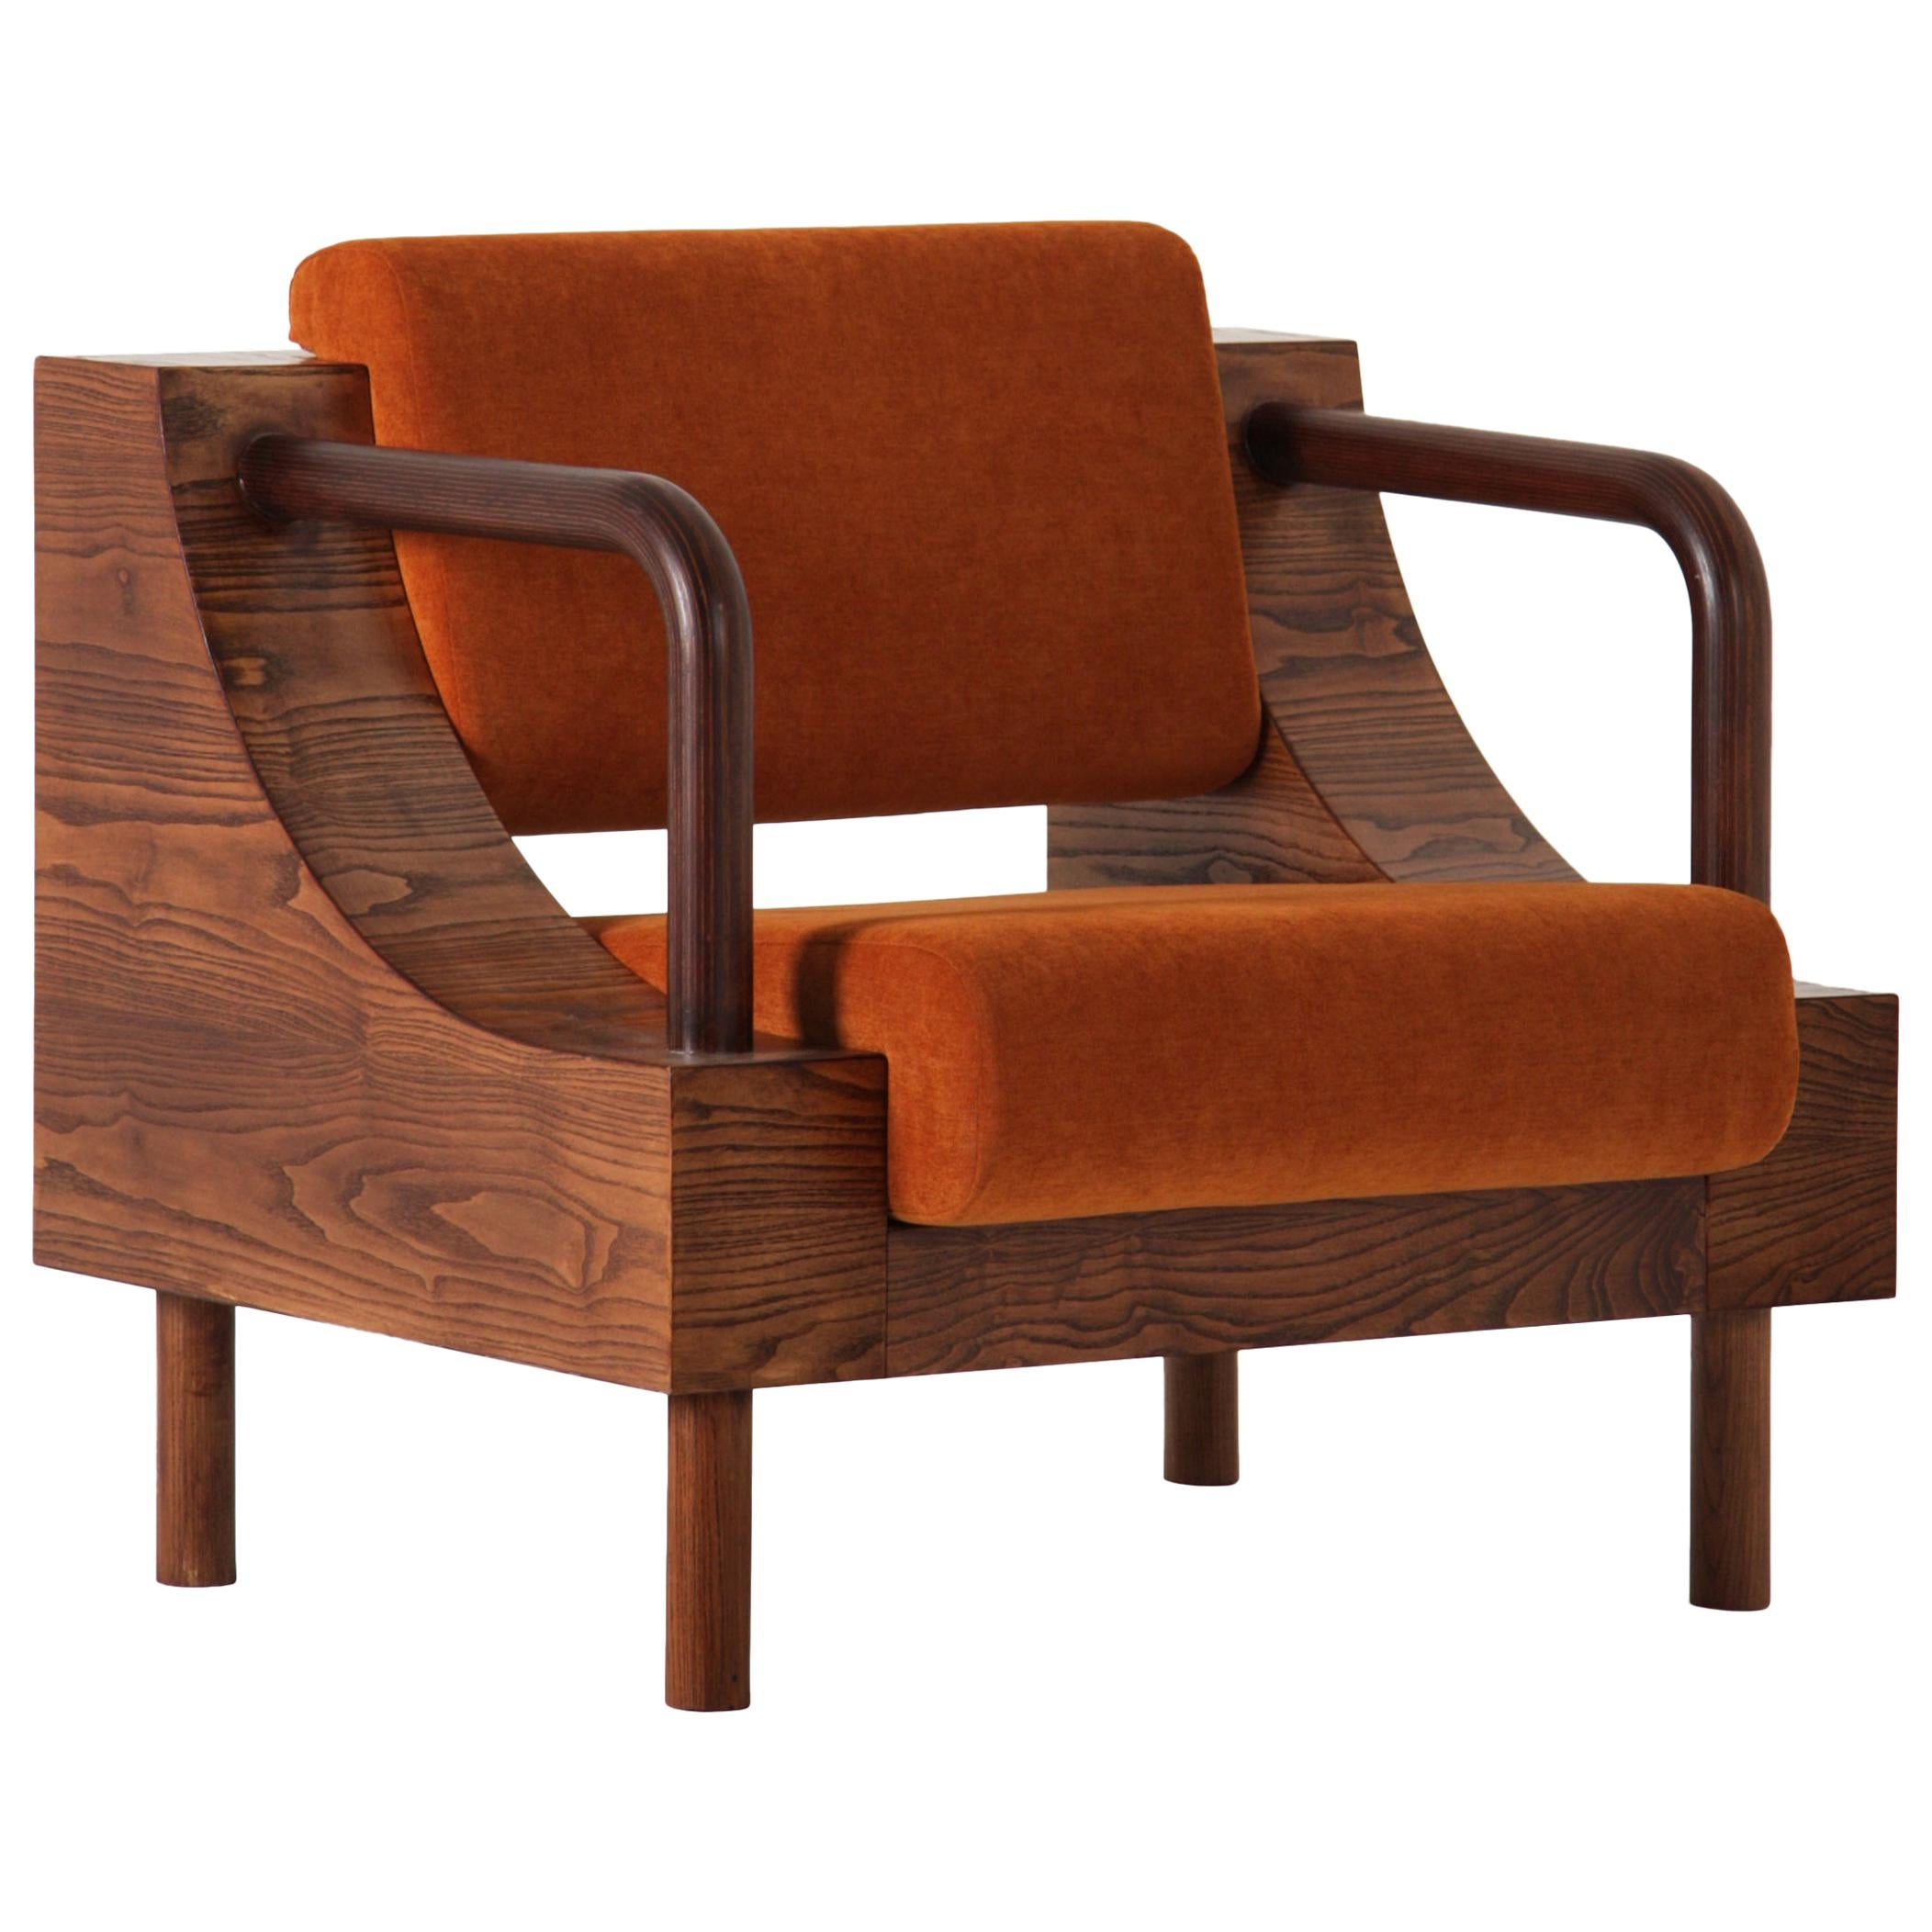 Modern Handcrafted Wooden Armchair with Velvet